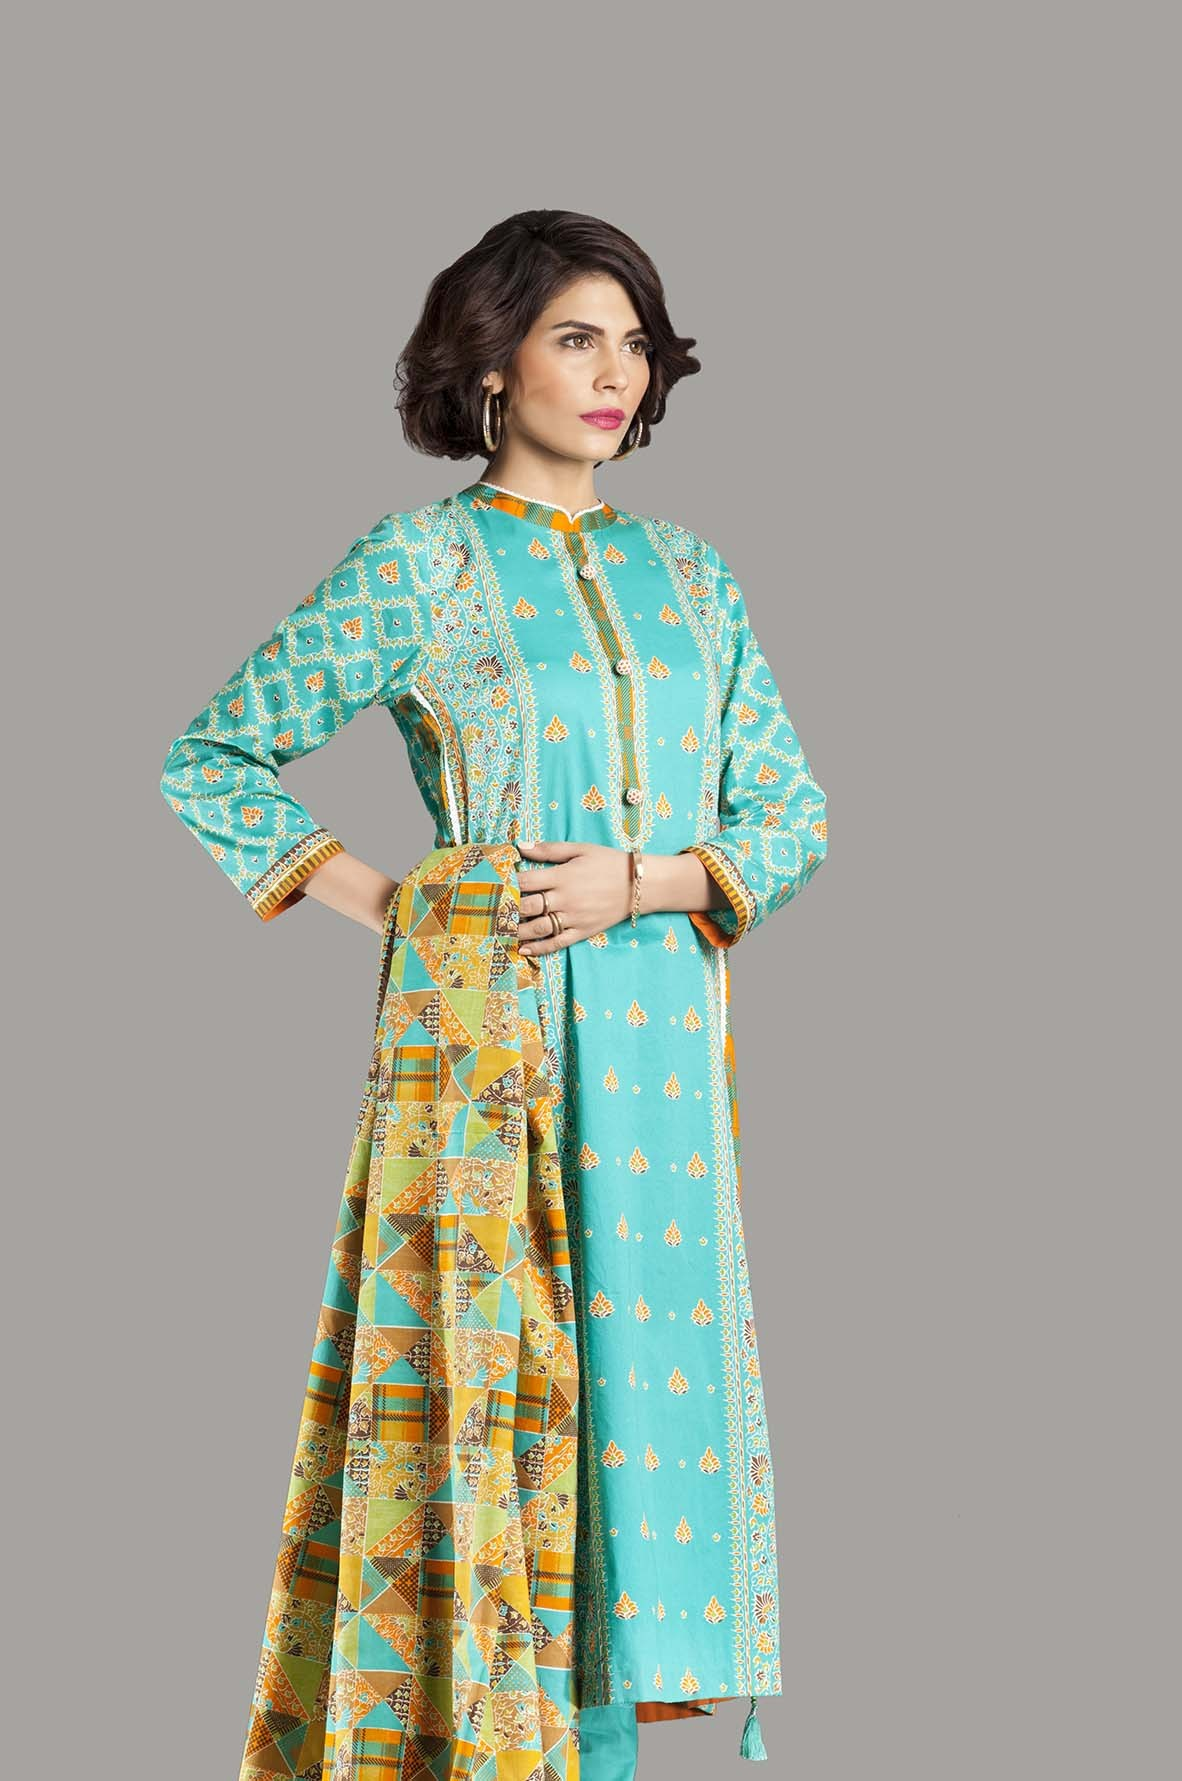 Kayseria Latest Winter Prints Best Shawls & Dresses Cambric Collection 2014-2015 (10)